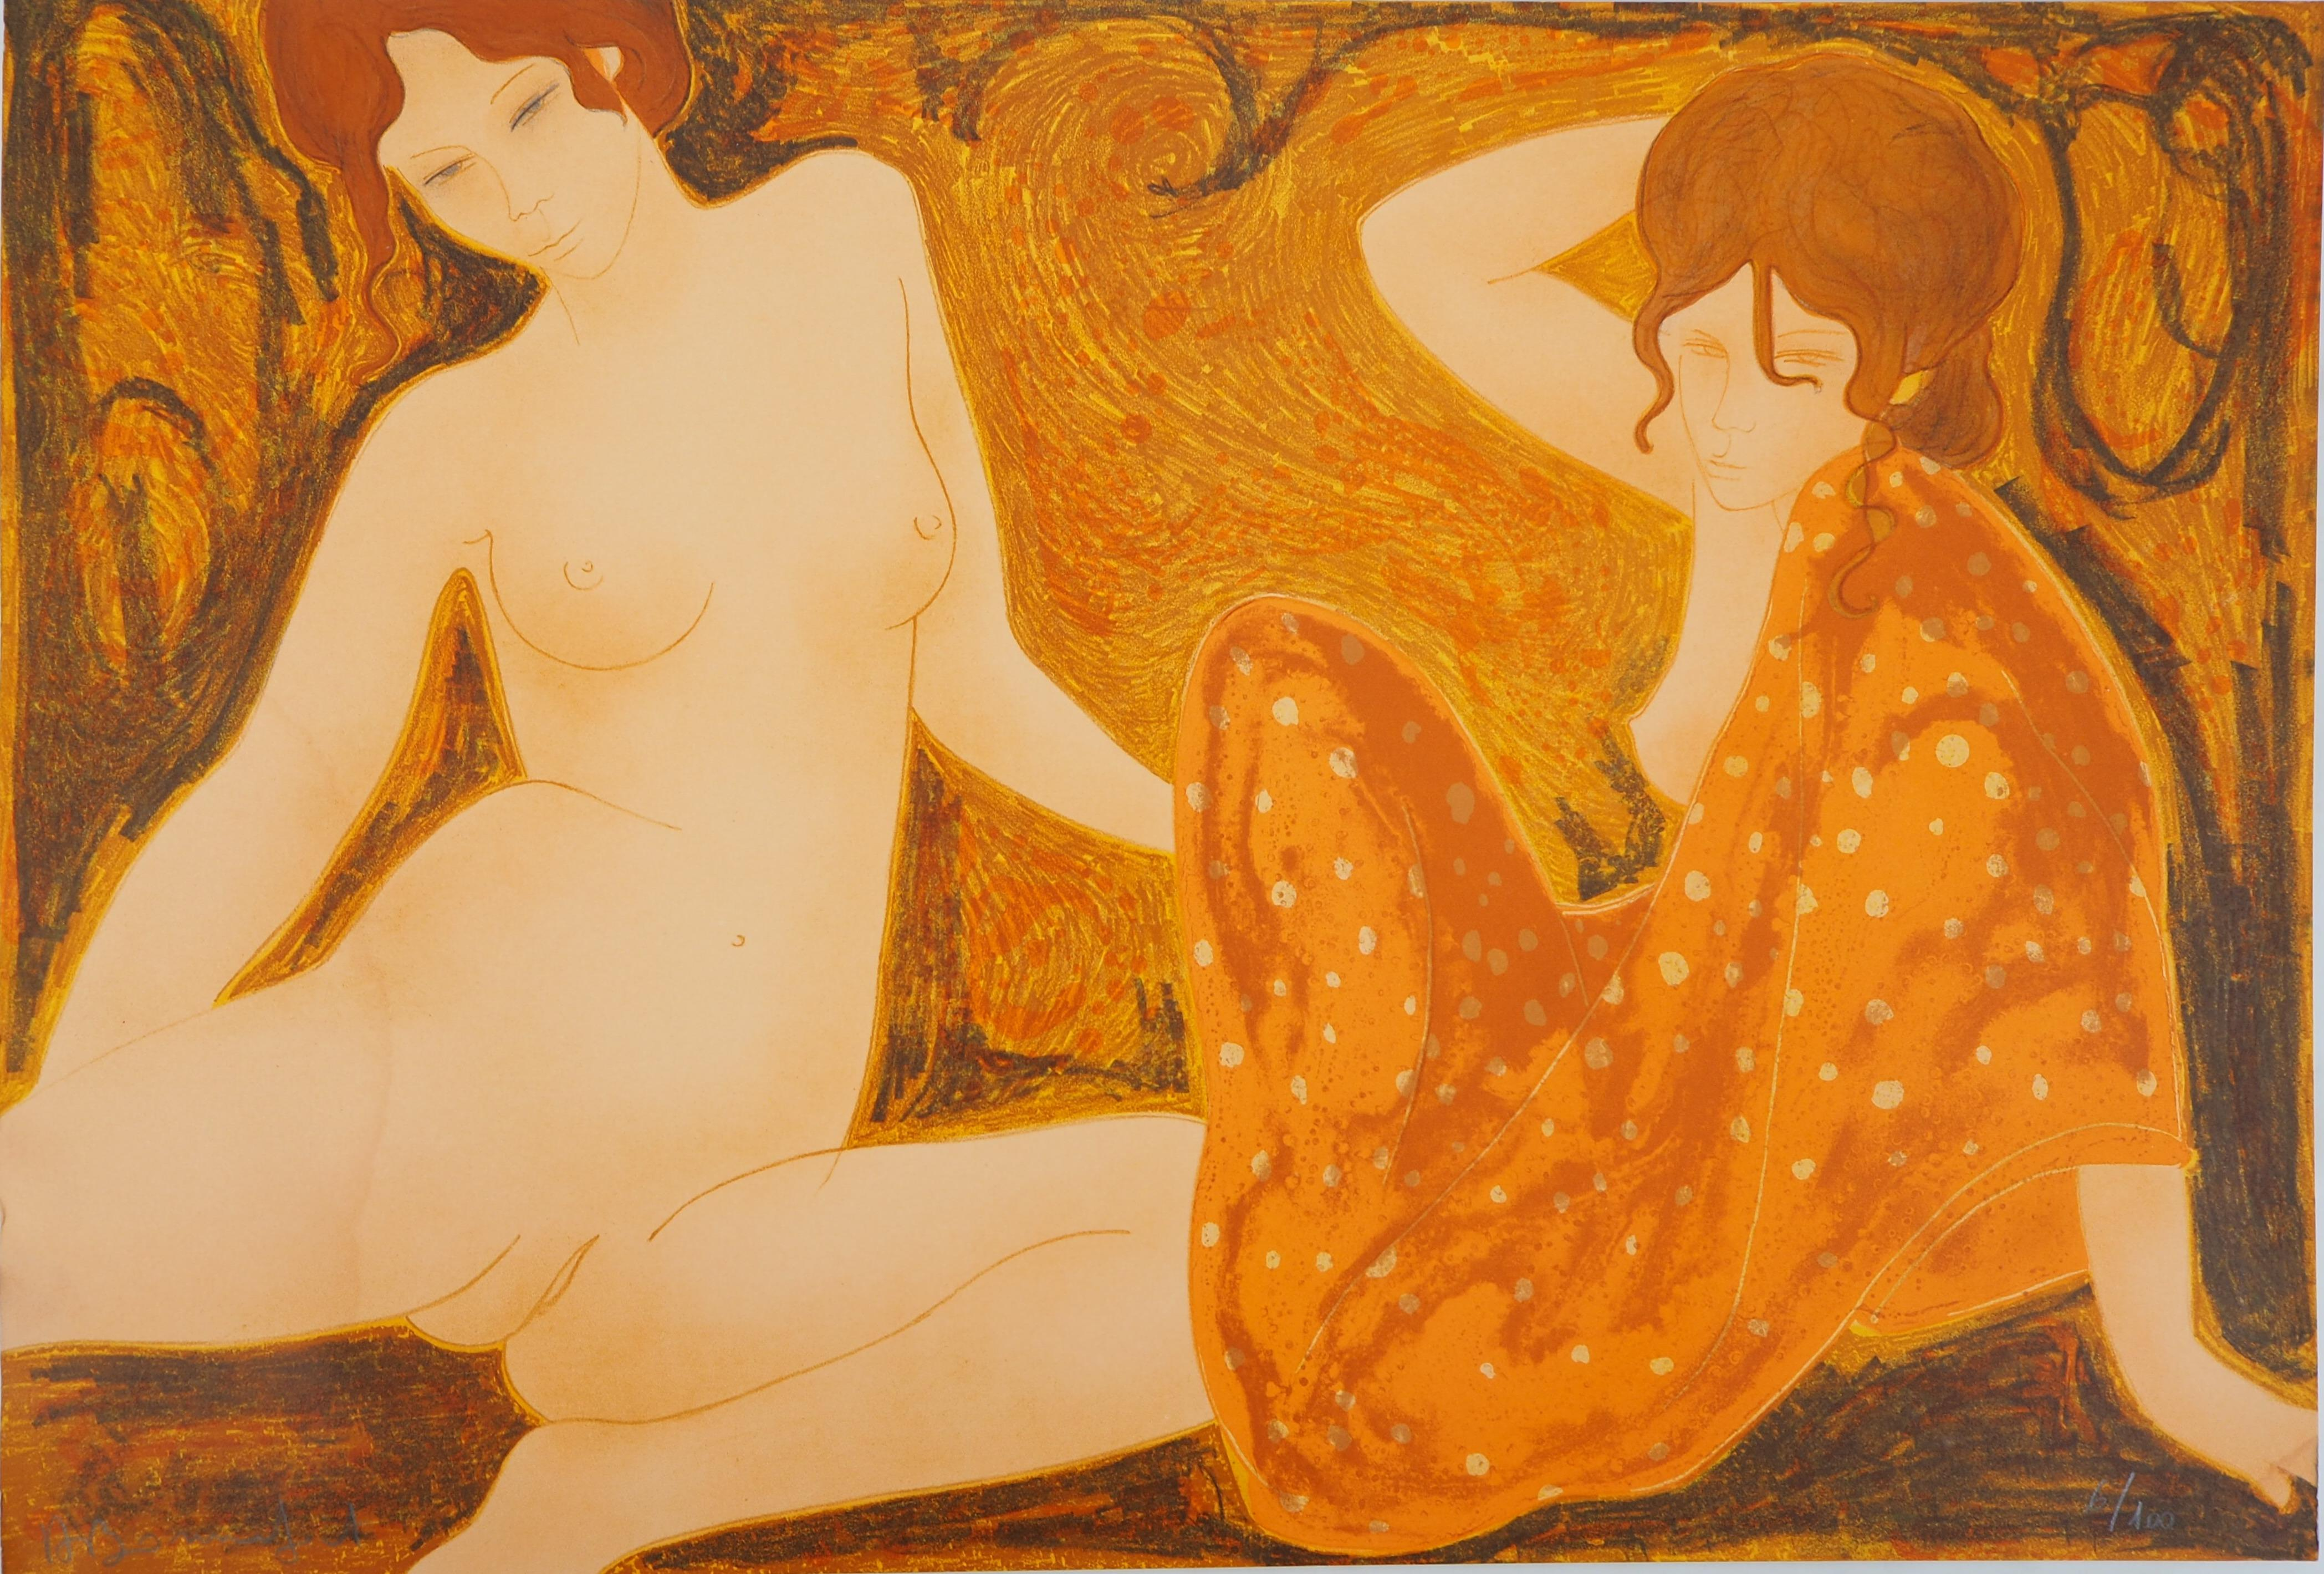 Relaxing Nudes - Original lithograph, Handsigned and Numbered /100